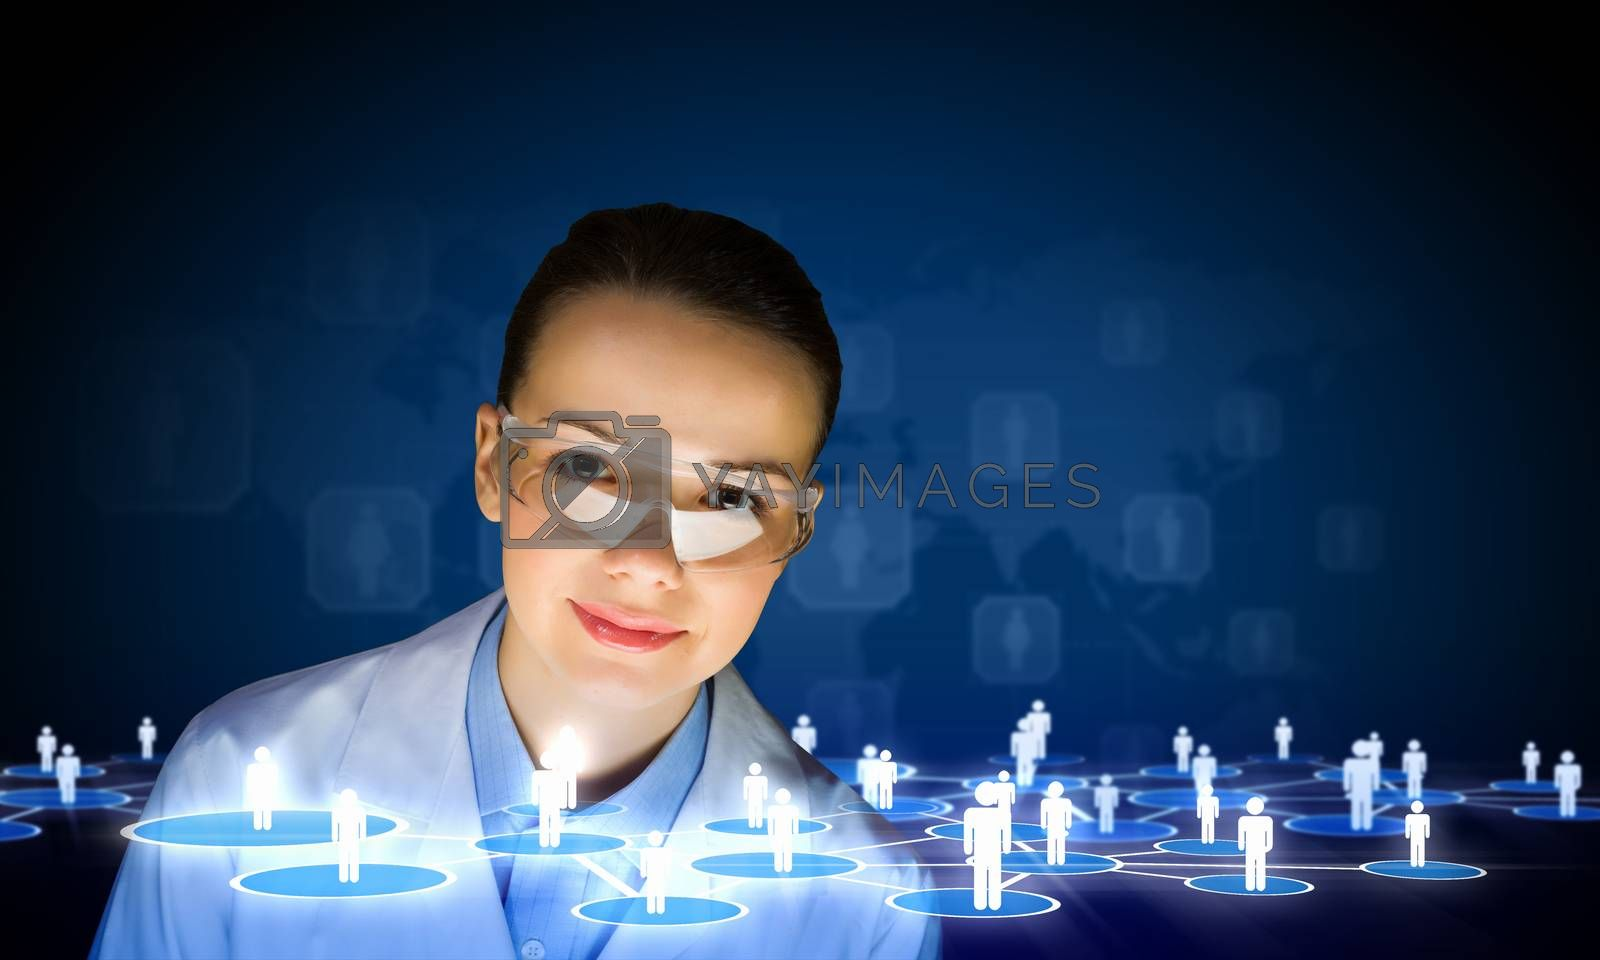 Image of young woman scientist in goggles against media screen. Net communication